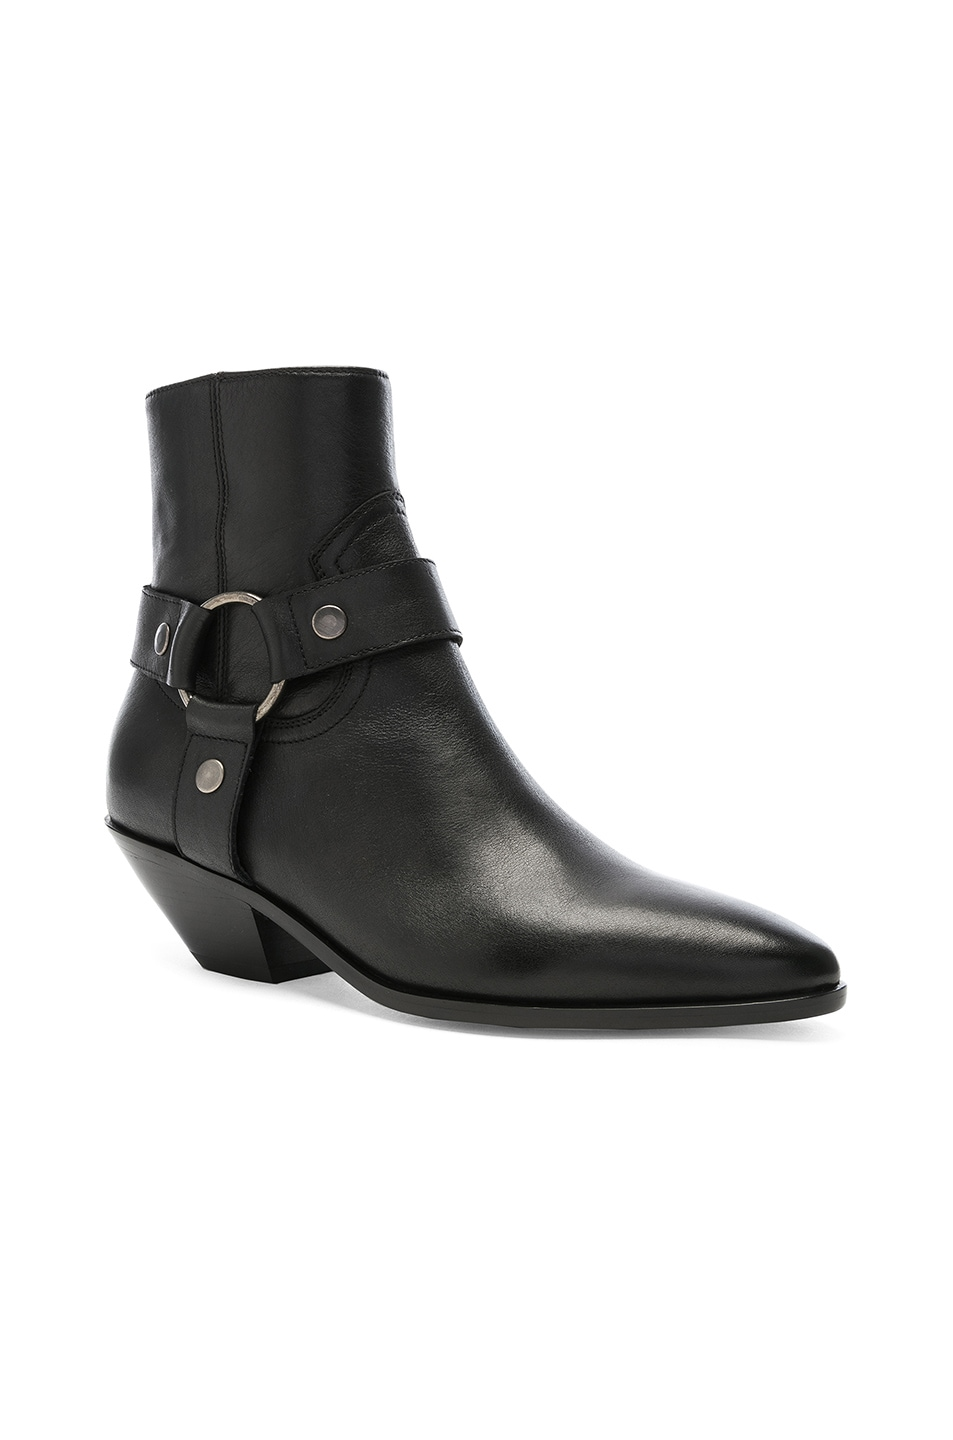 Image 2 of Saint Laurent West Strap Ankle Boots in Black